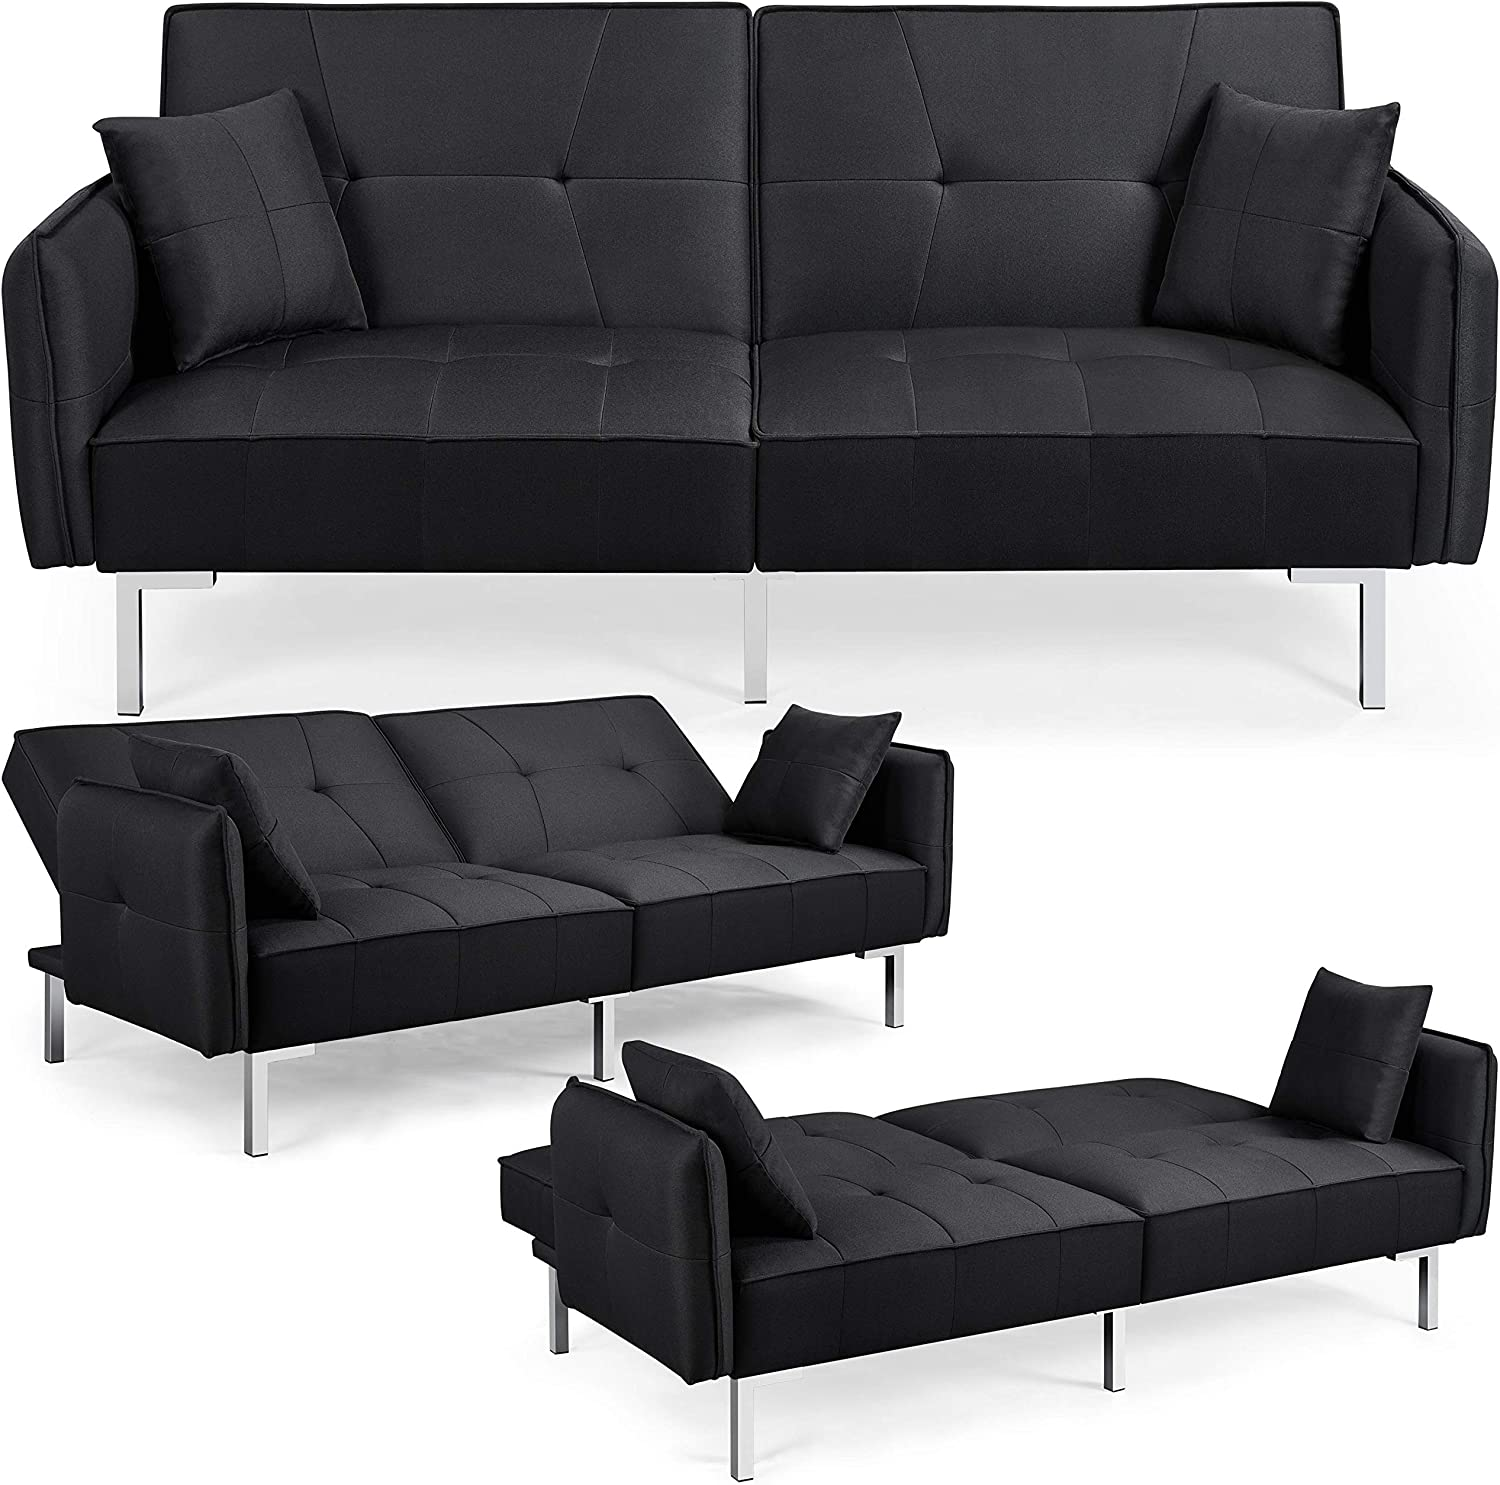 Yaheetech Fabric Sofa Bed 3 Seater Click Clack Sofa Couch Recliner Settee for Living Room//Bedroom with Arms/&2 Cushions Black